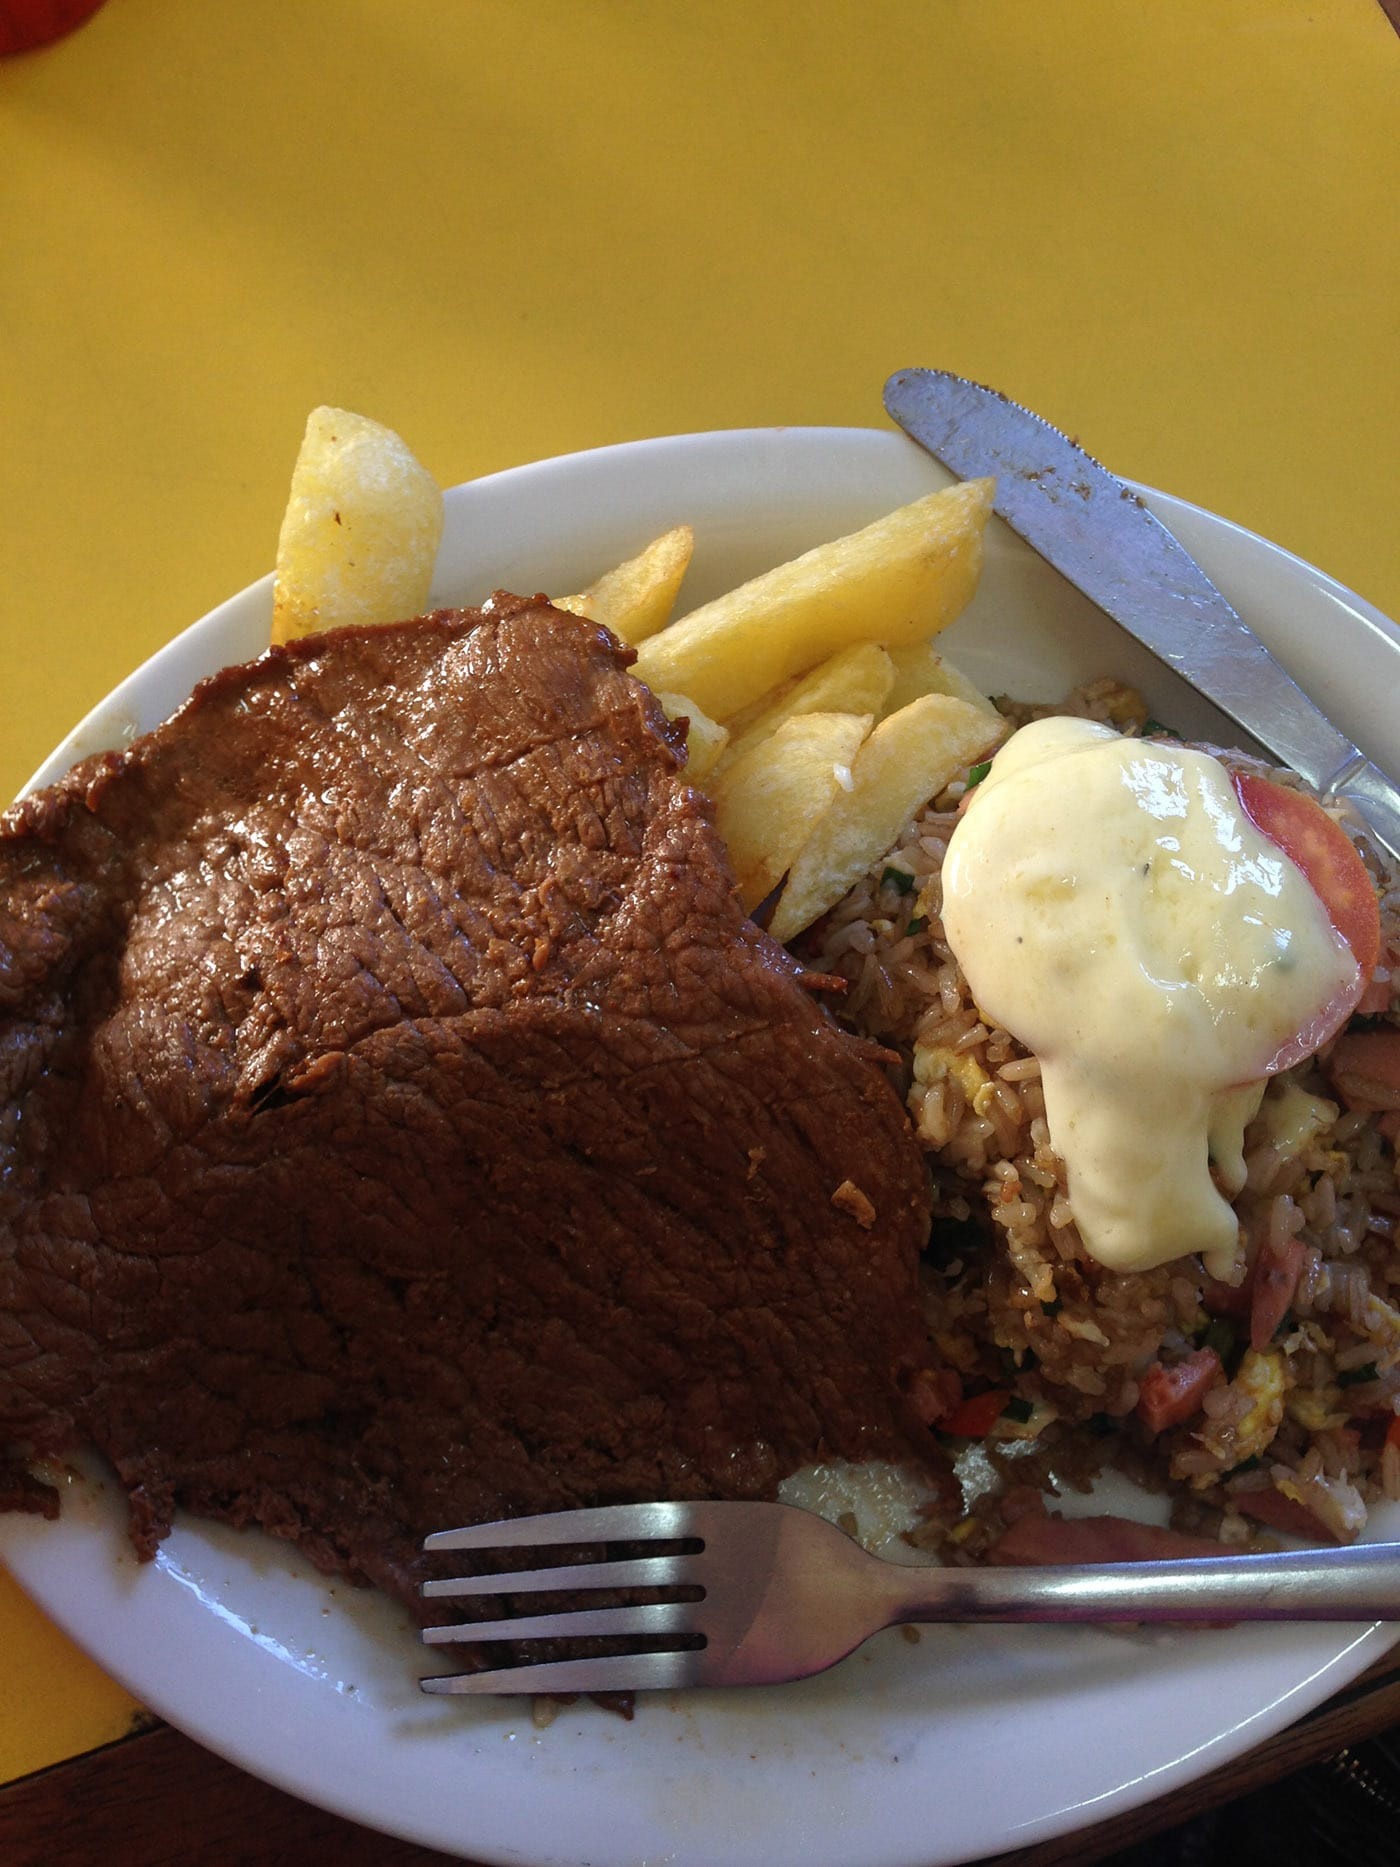 Beef with fried rice and fries in Cusco, Peru. What to eat in Cusco, Peru.